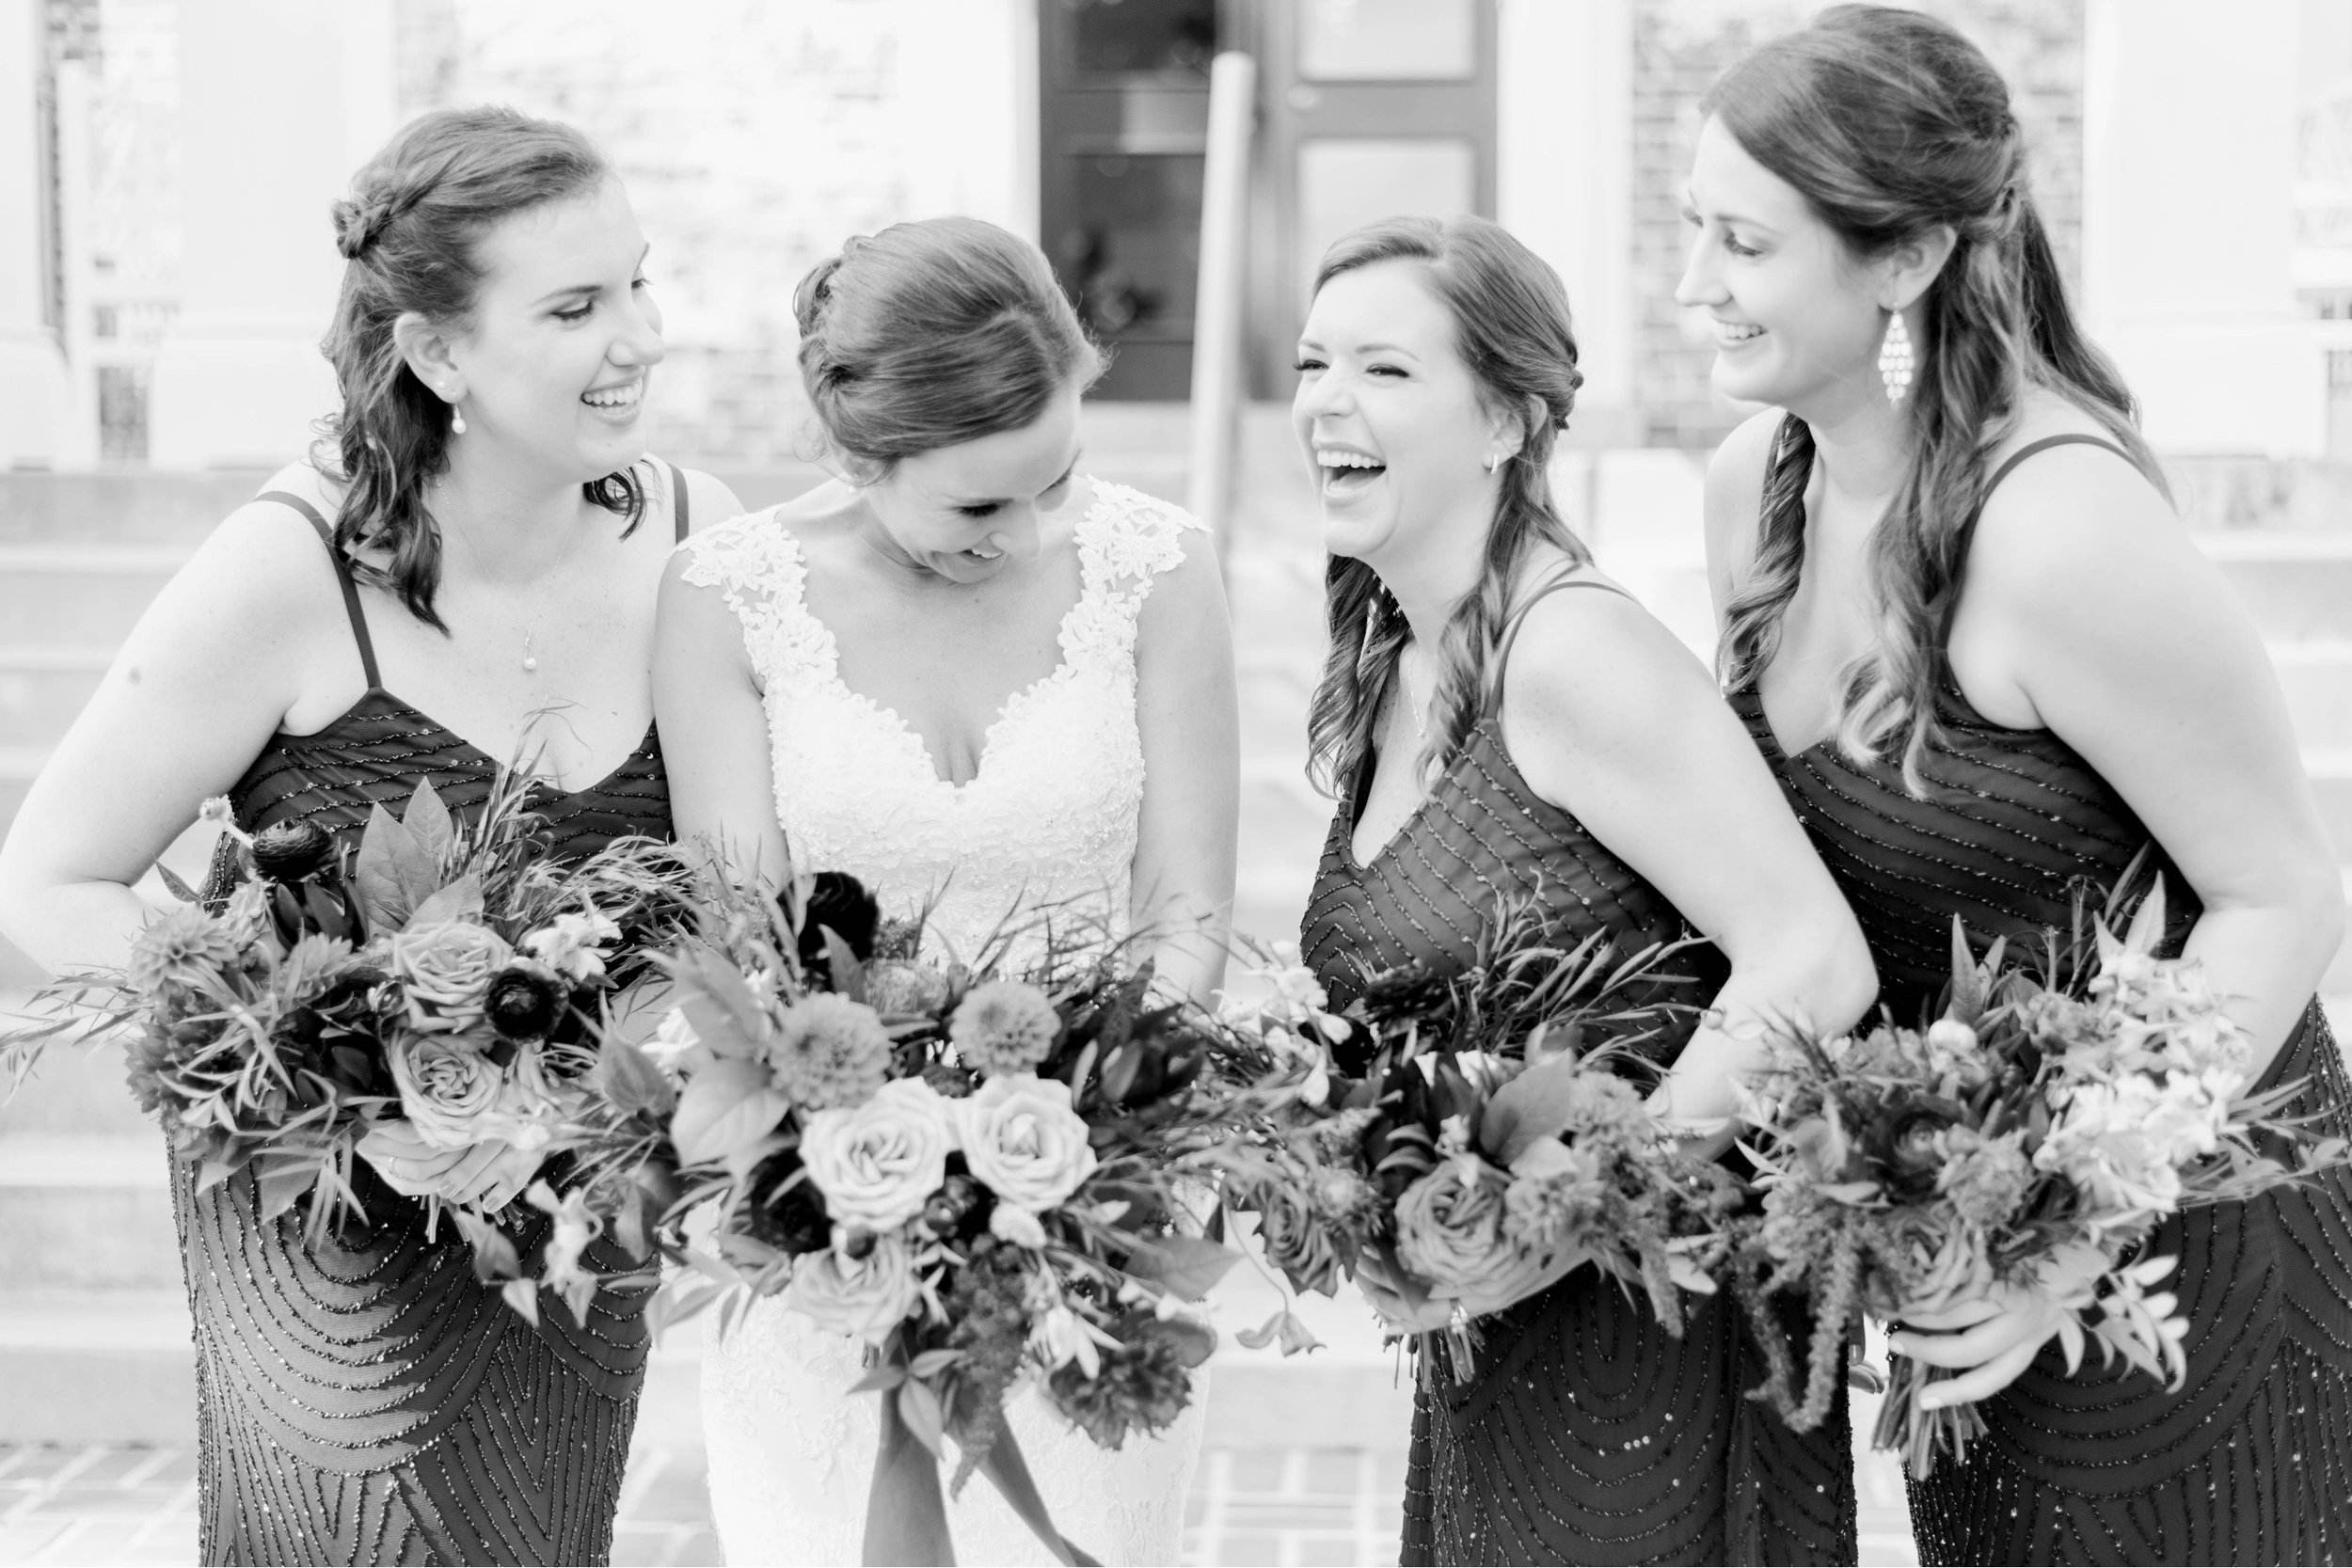 Gordan+Lauren_BoonsboroCountryClubWedding_Virginiaweddingphotographer_LynchburgVi 19.jpg